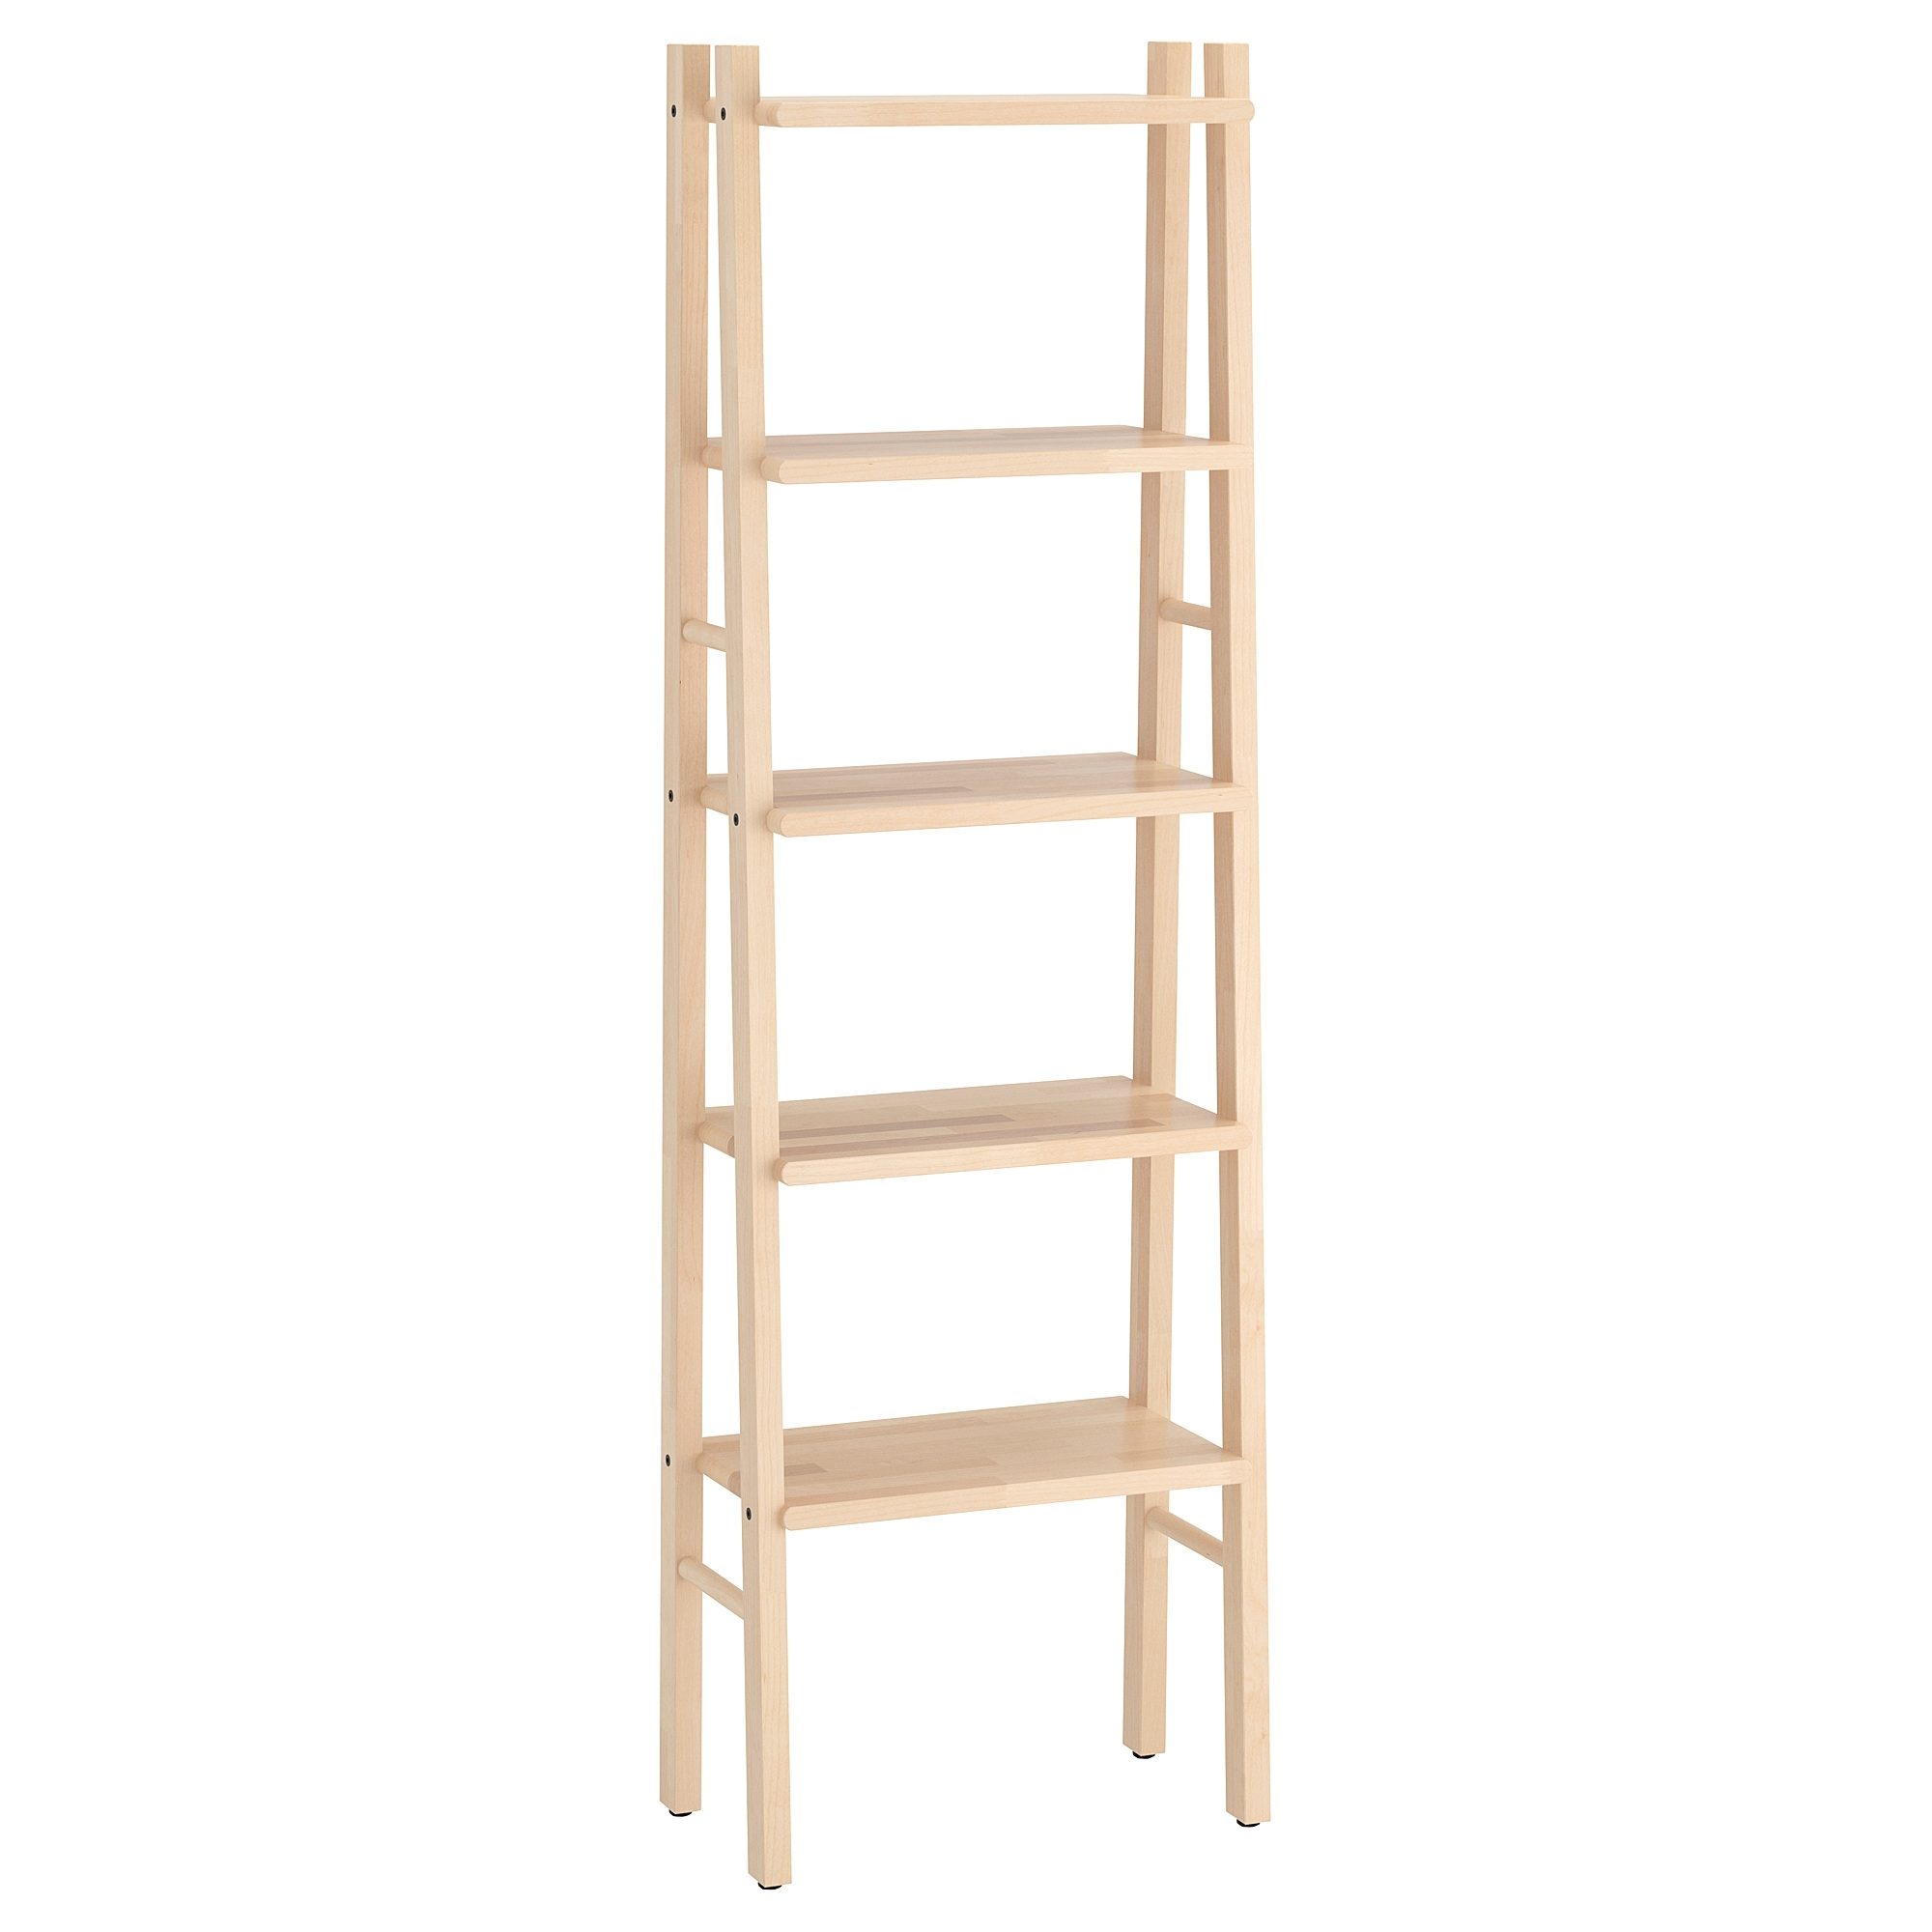 Newest Ladder Ikea Bookcases With Regard To Vilto Shelving Unit Birch 46x150 Cm – Ikea (View 5 of 15)